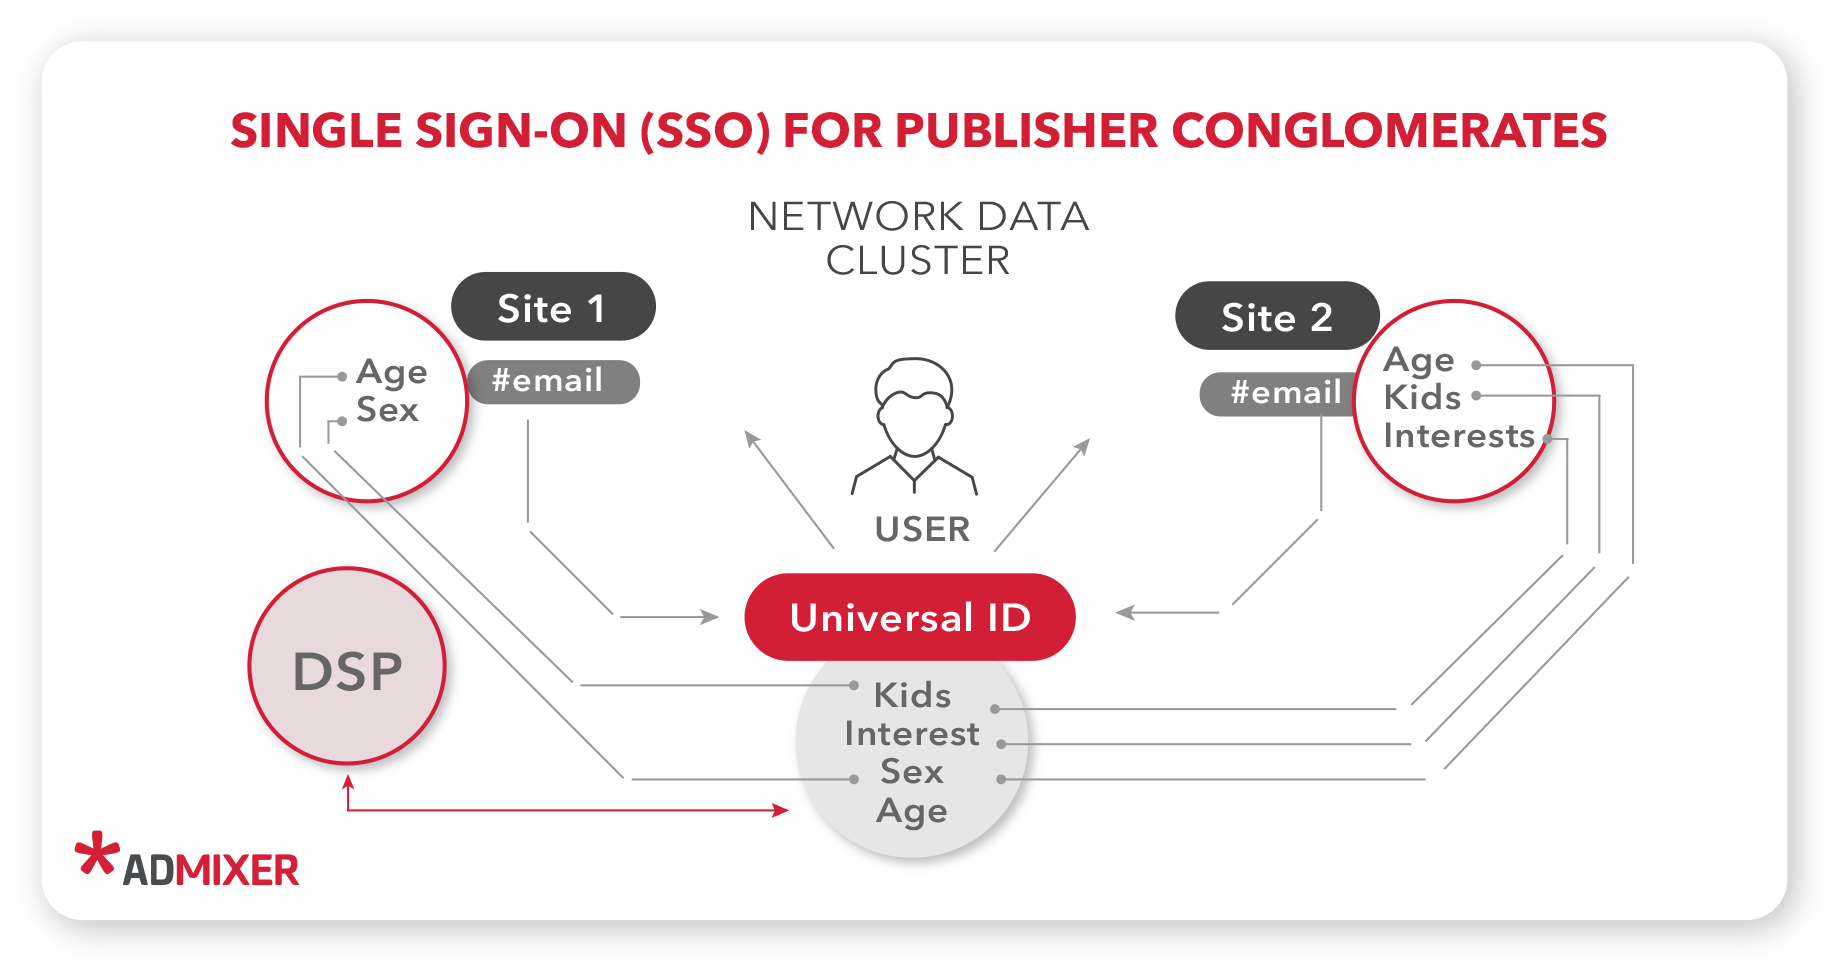 SSO Single Sign-On for Publisher Conglomerates - Admixer Blog